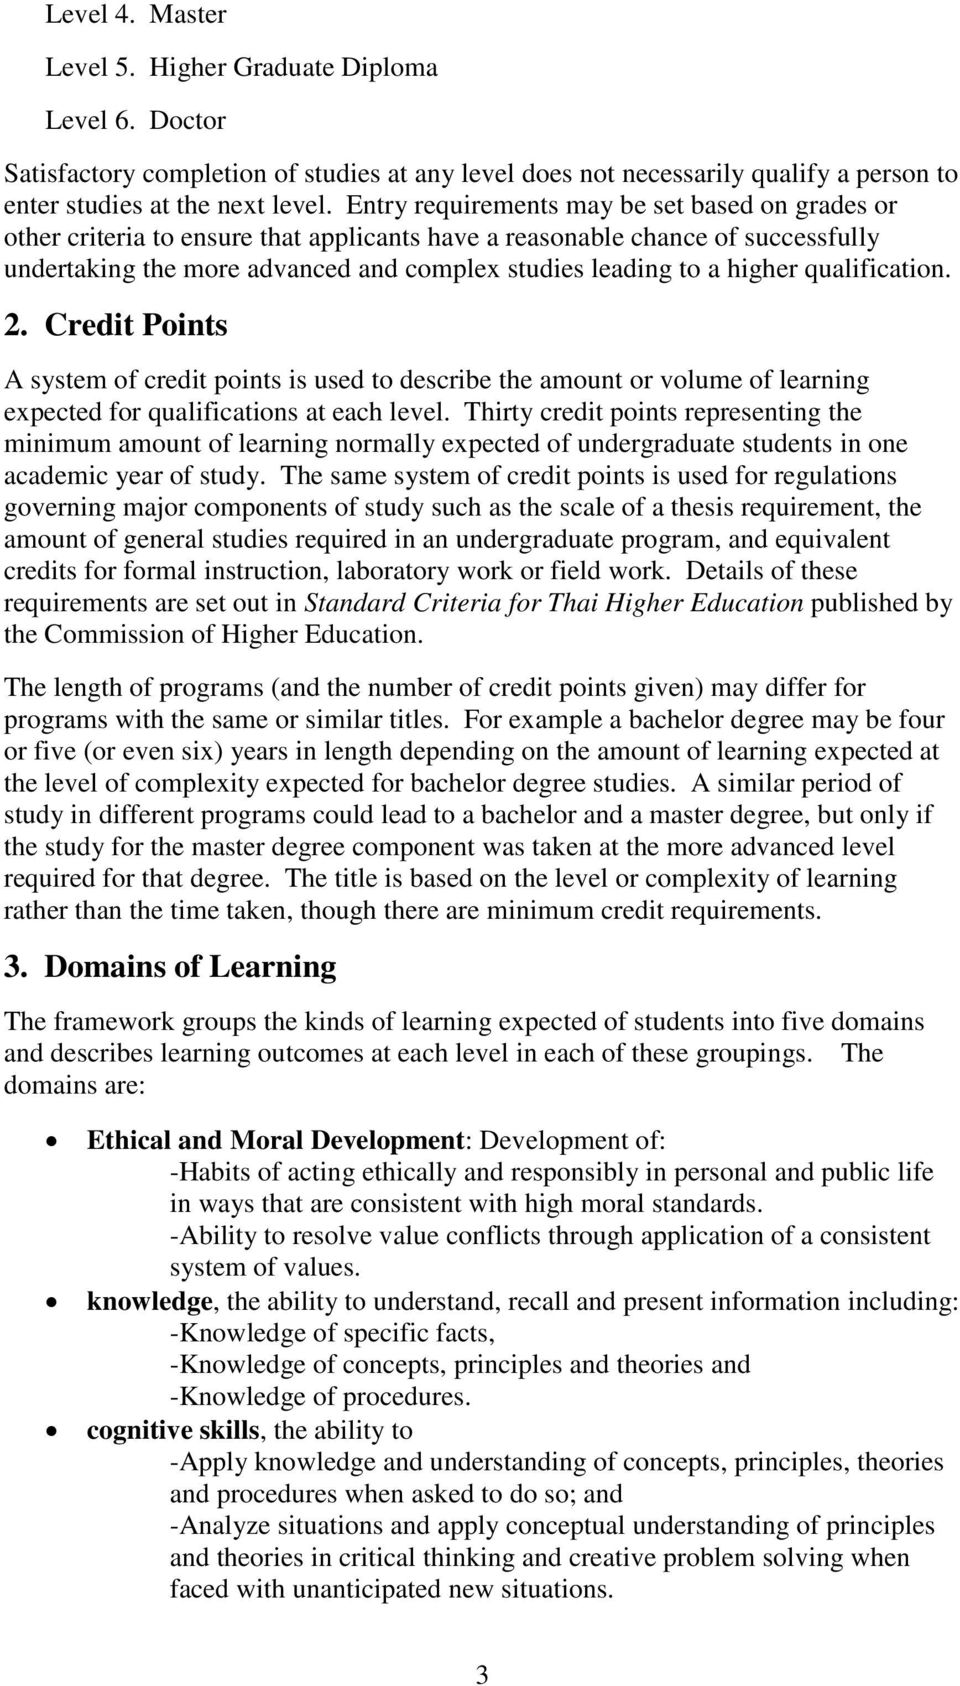 higher qualification. 2. Credit Points A system of credit points is used to describe the amount or volume of learning expected for qualifications at each level.